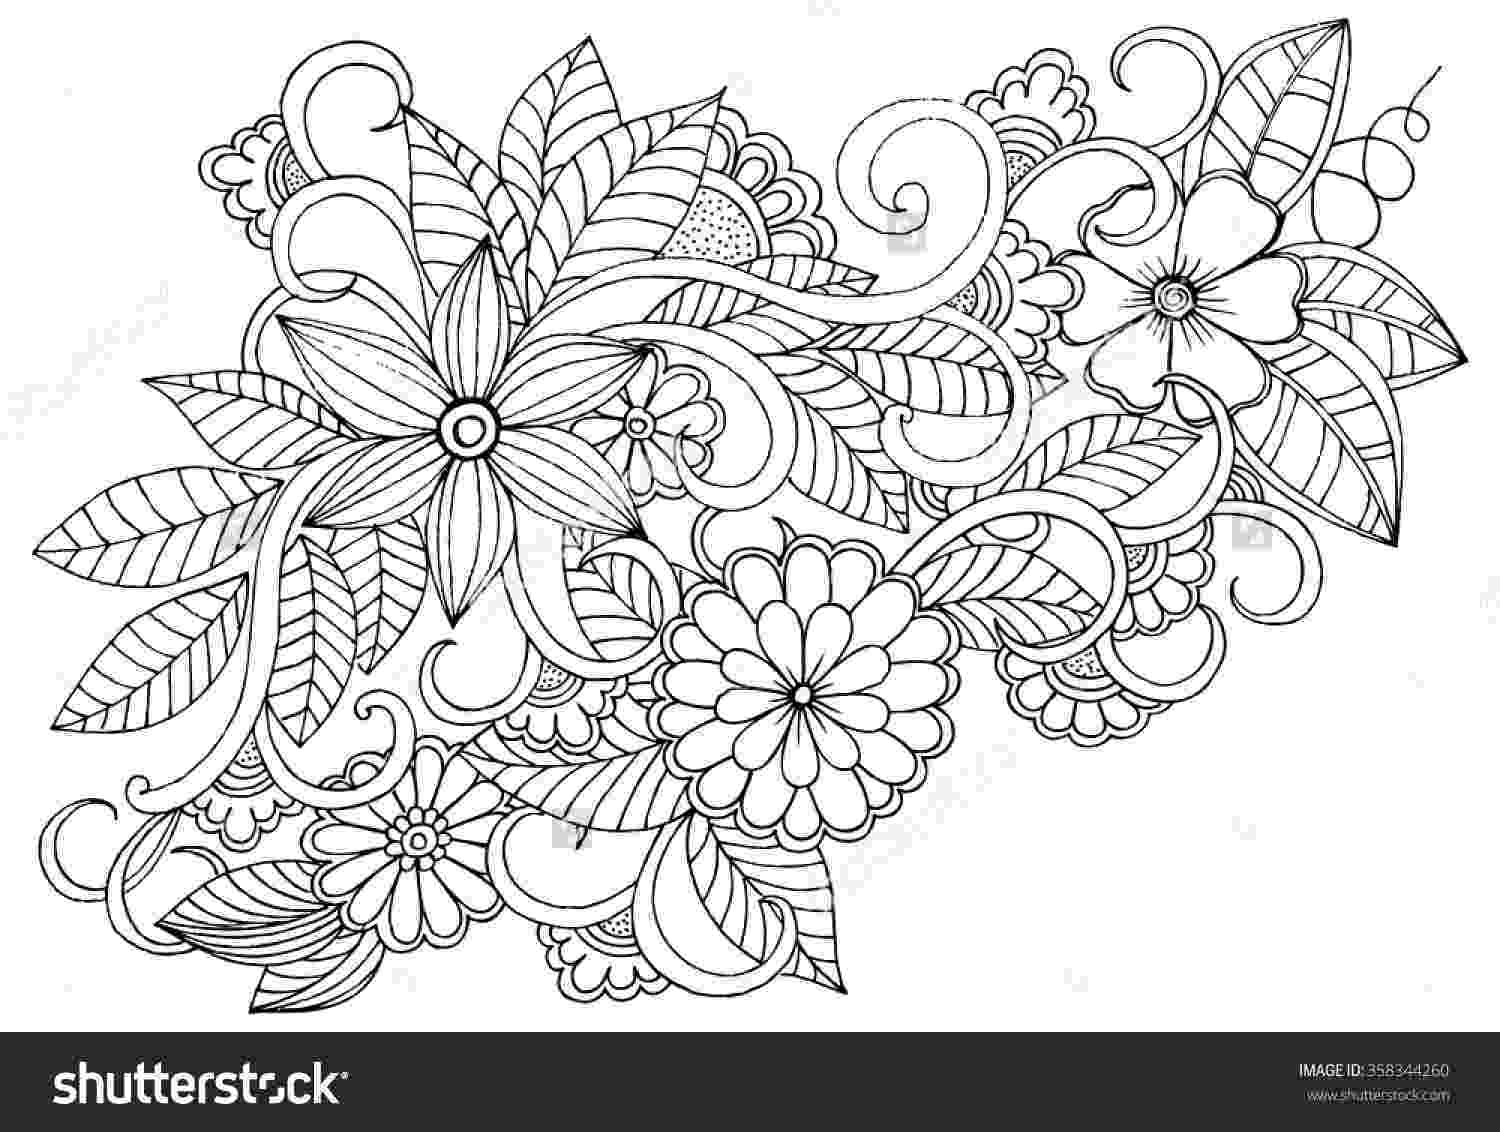 coloring patterns flowers four free flower coloring pages for adults flowers coloring patterns